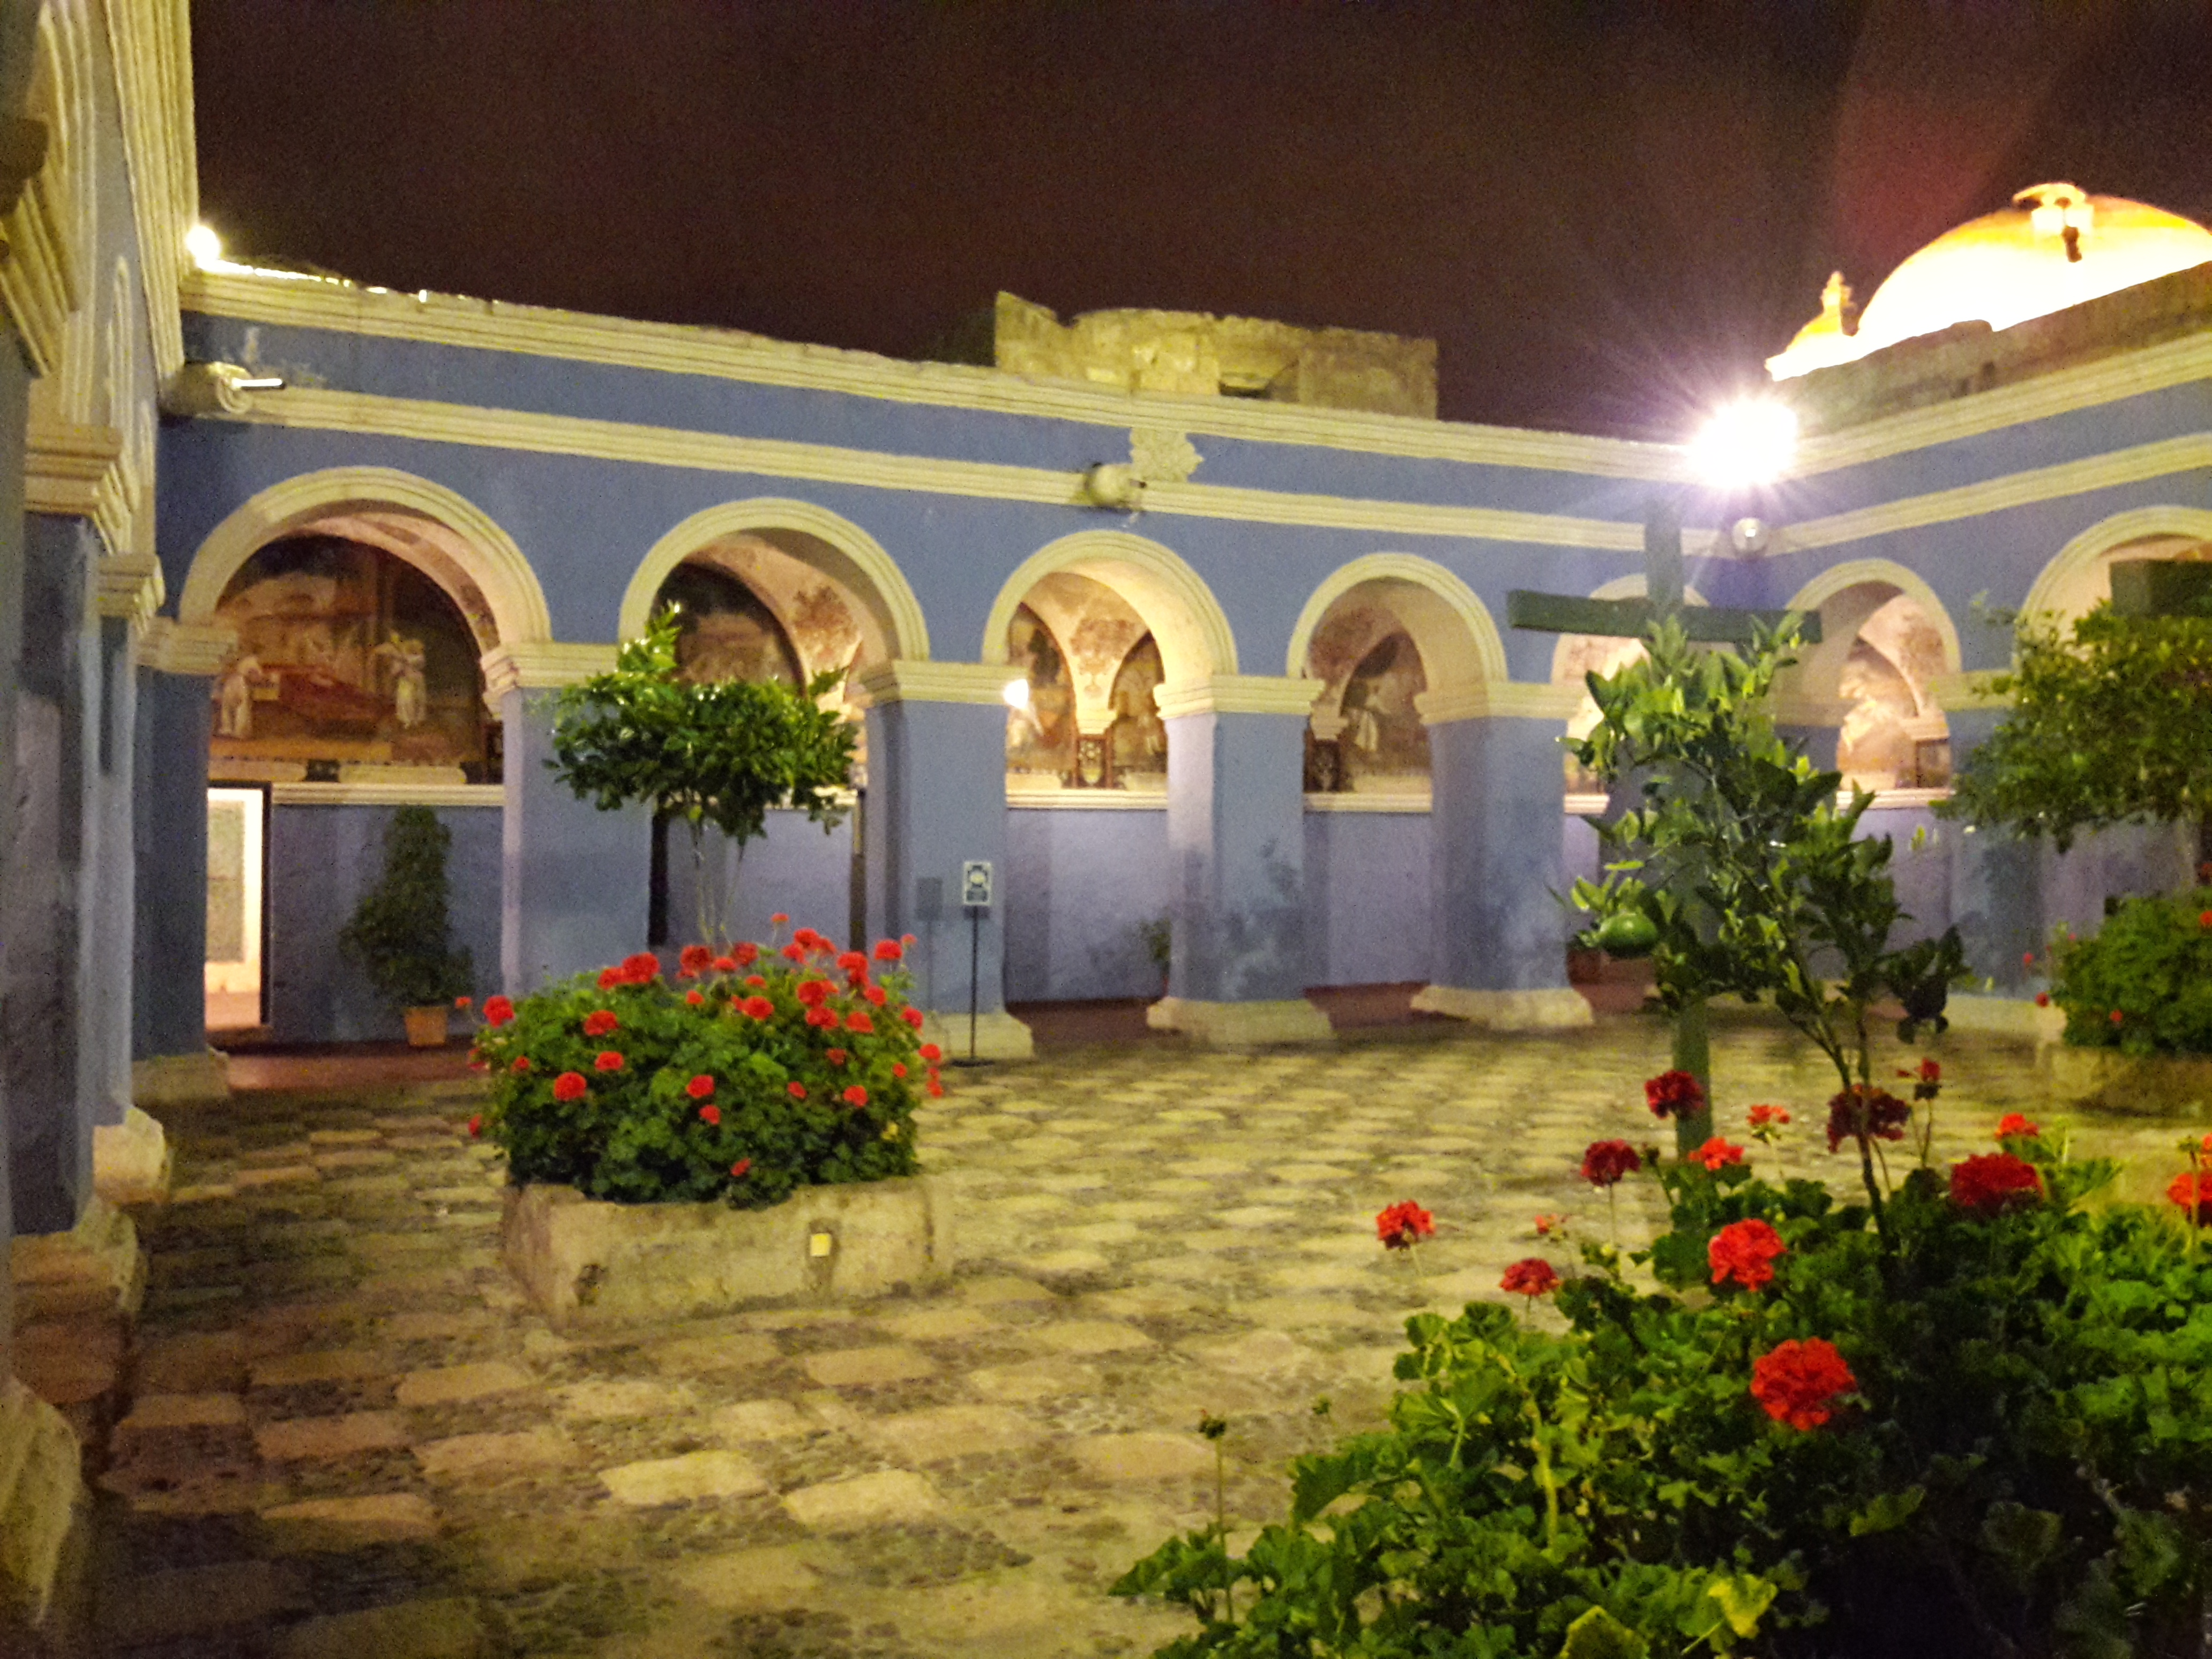 Blue archways. Flower pots with red flowers